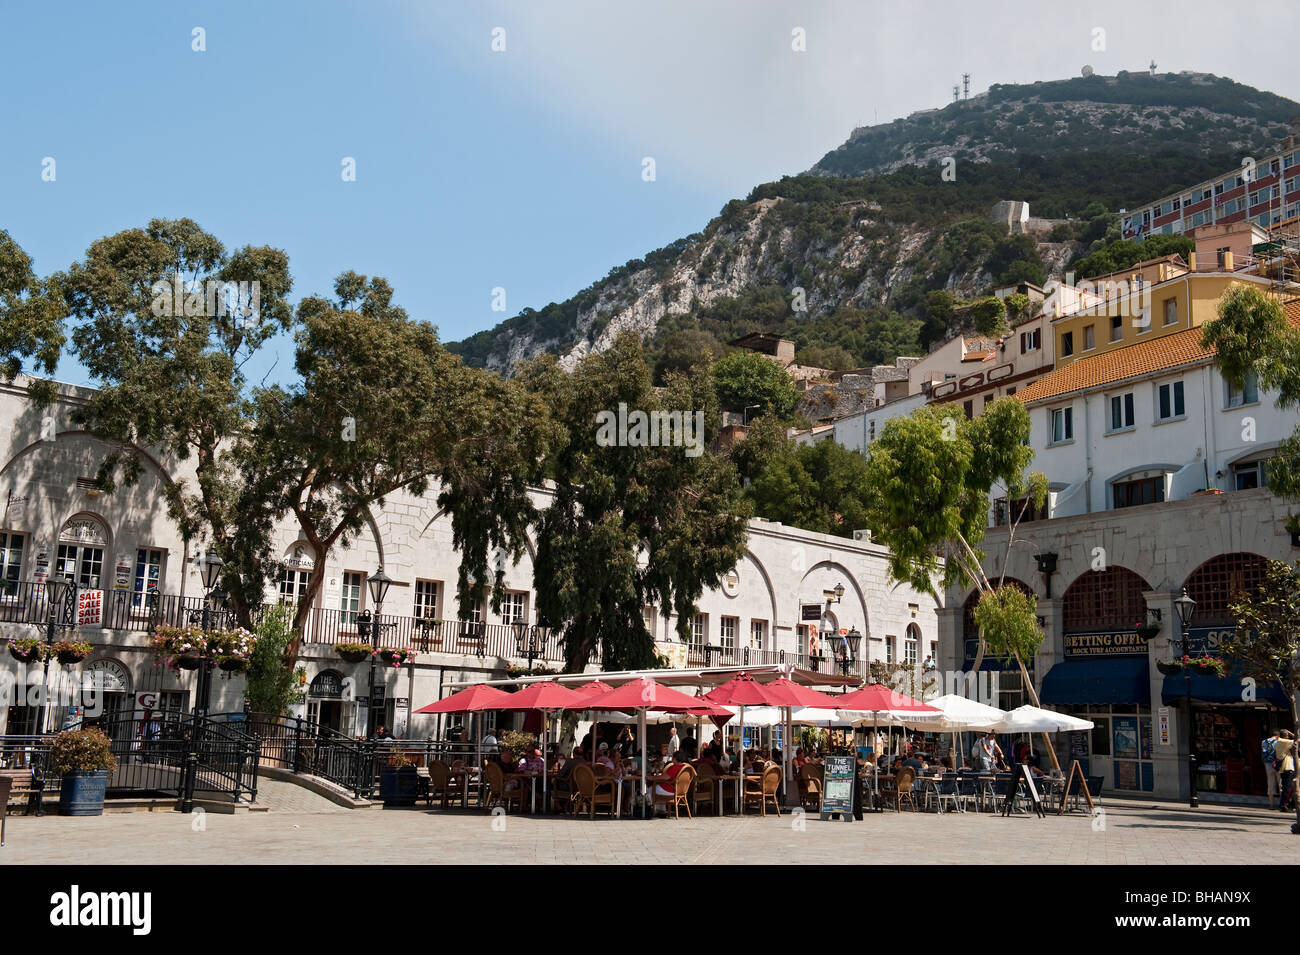 Grand Casemates Square at the end of Main Street, Gibraltar - Stock Image